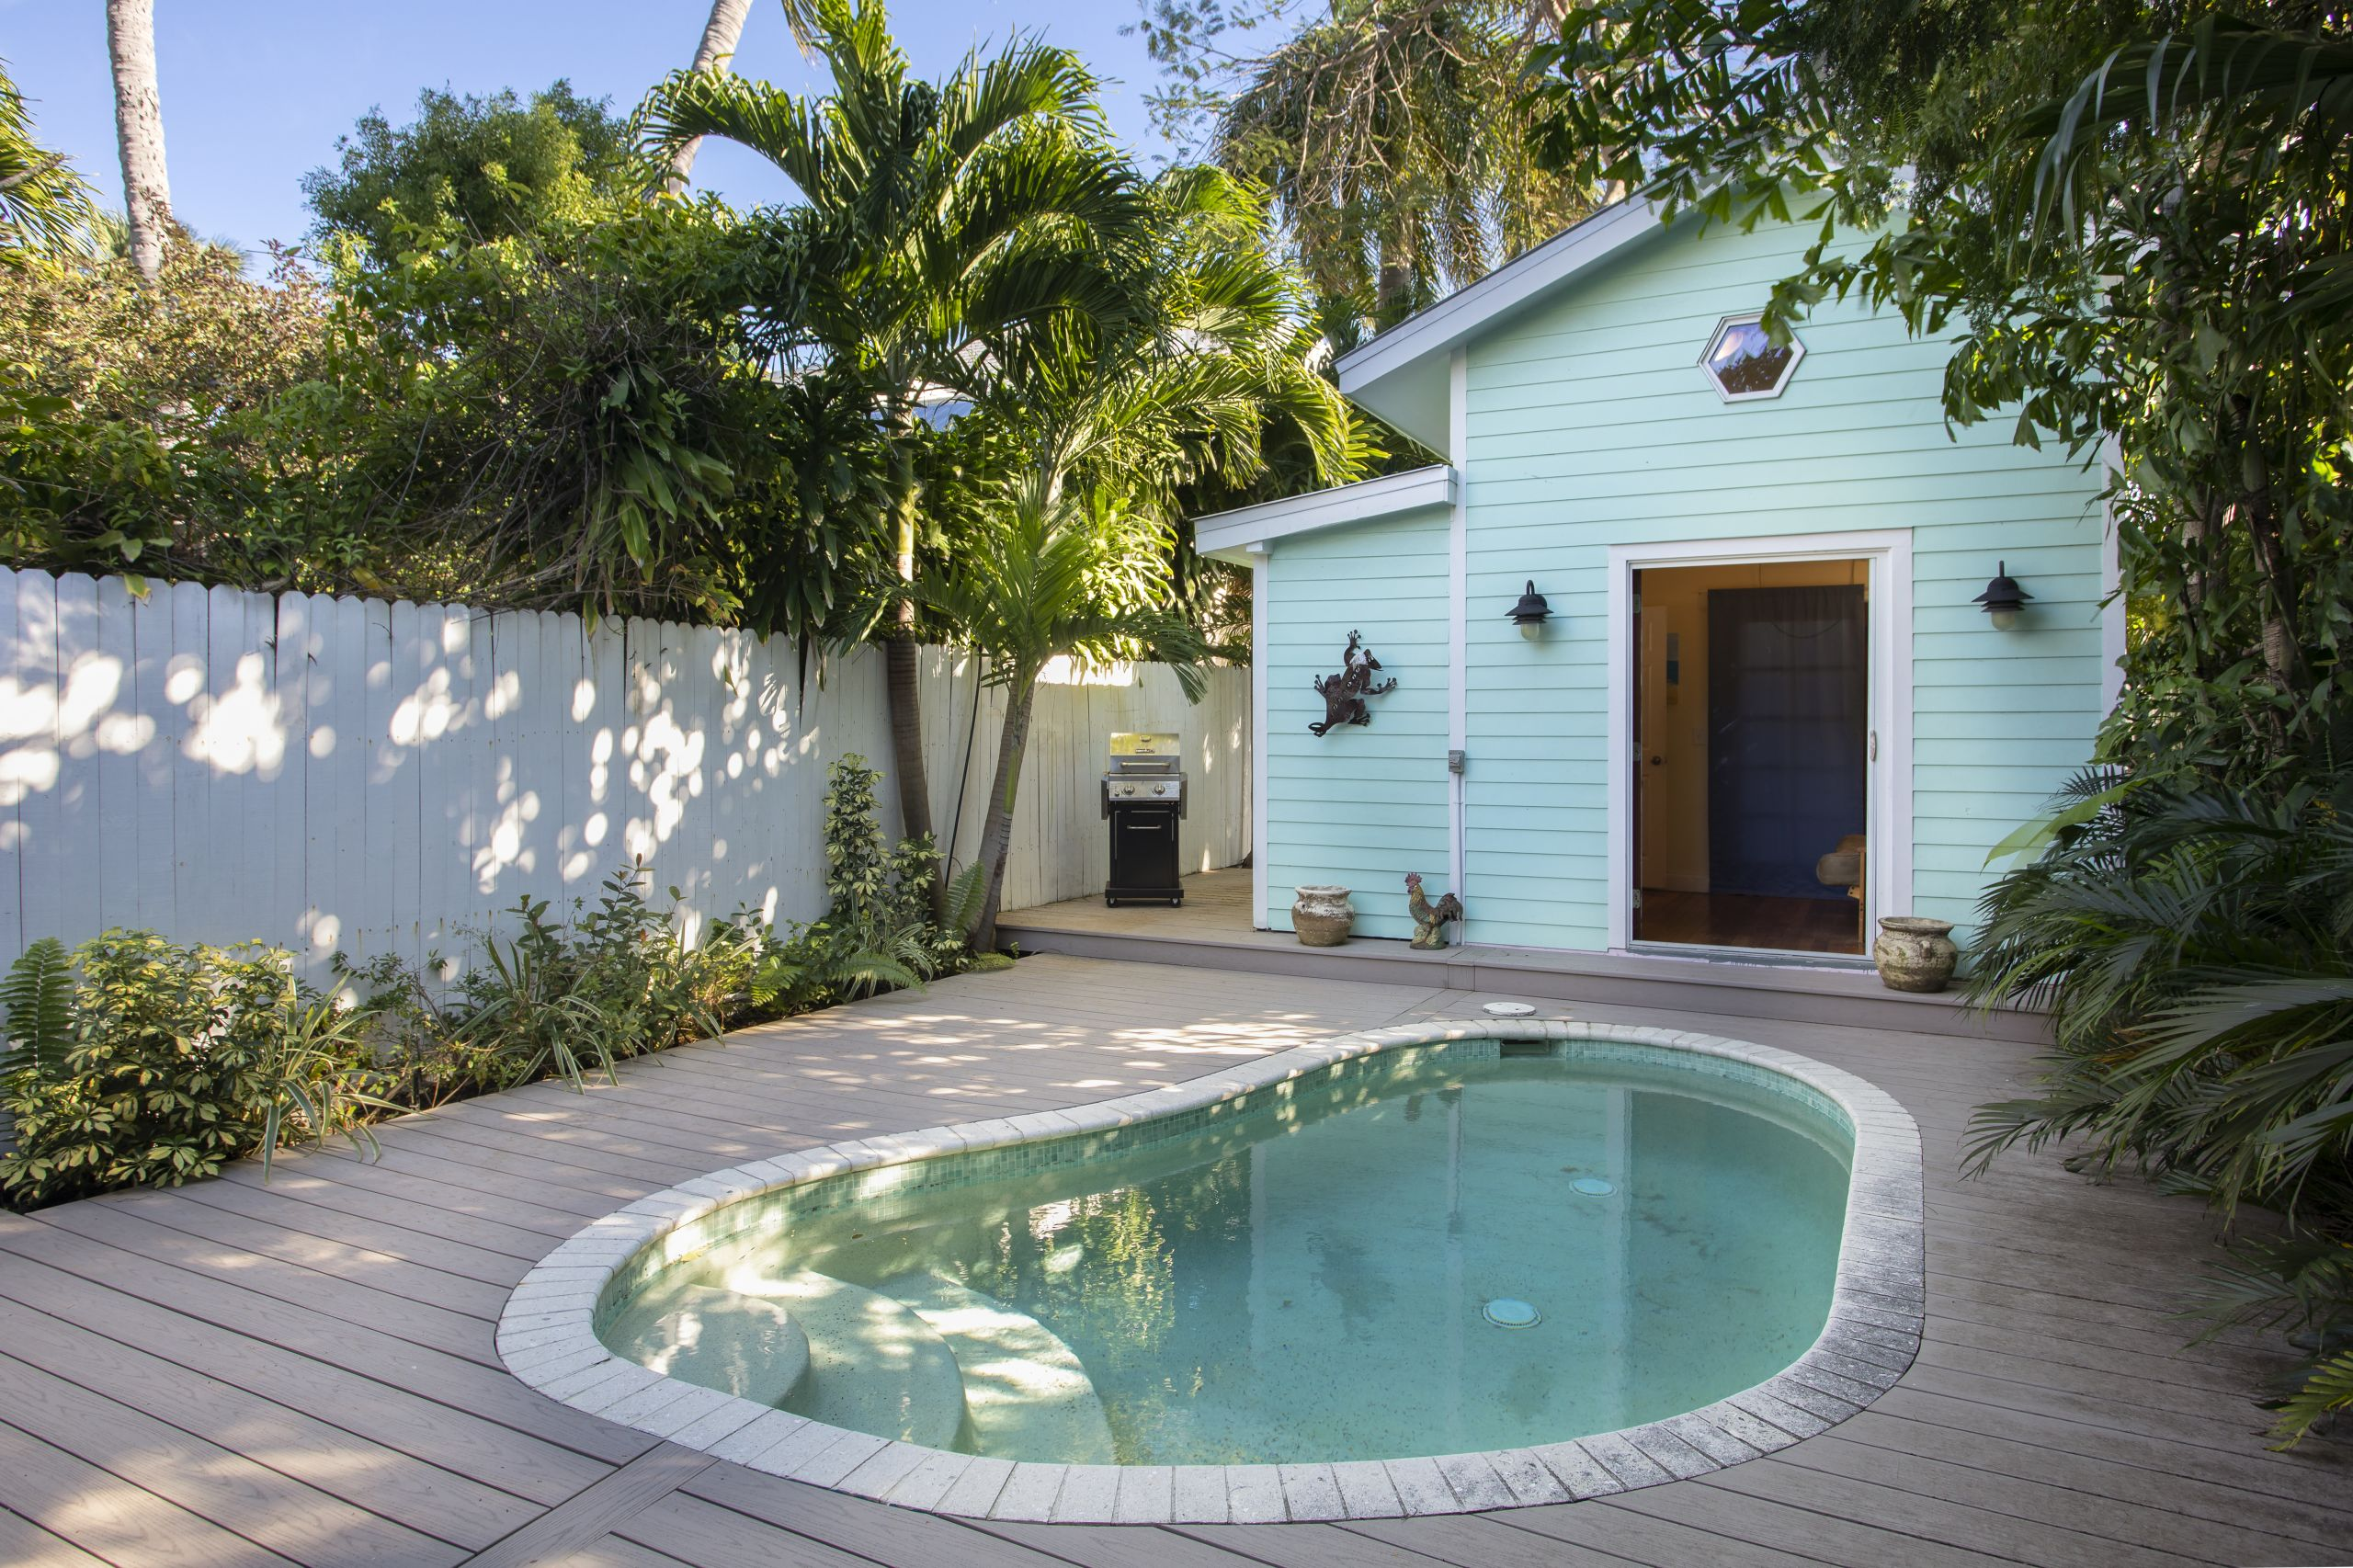 Old Town 3 BR w/a Pool Under $1m